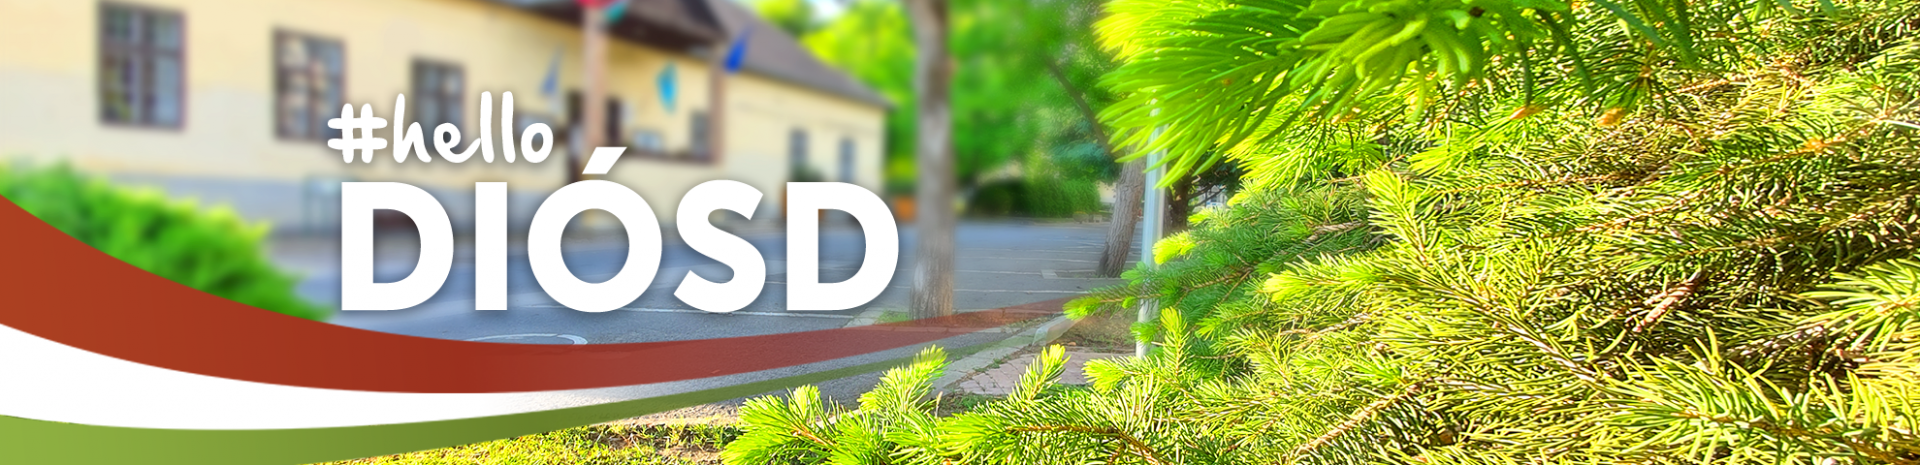 diosd_banner.png